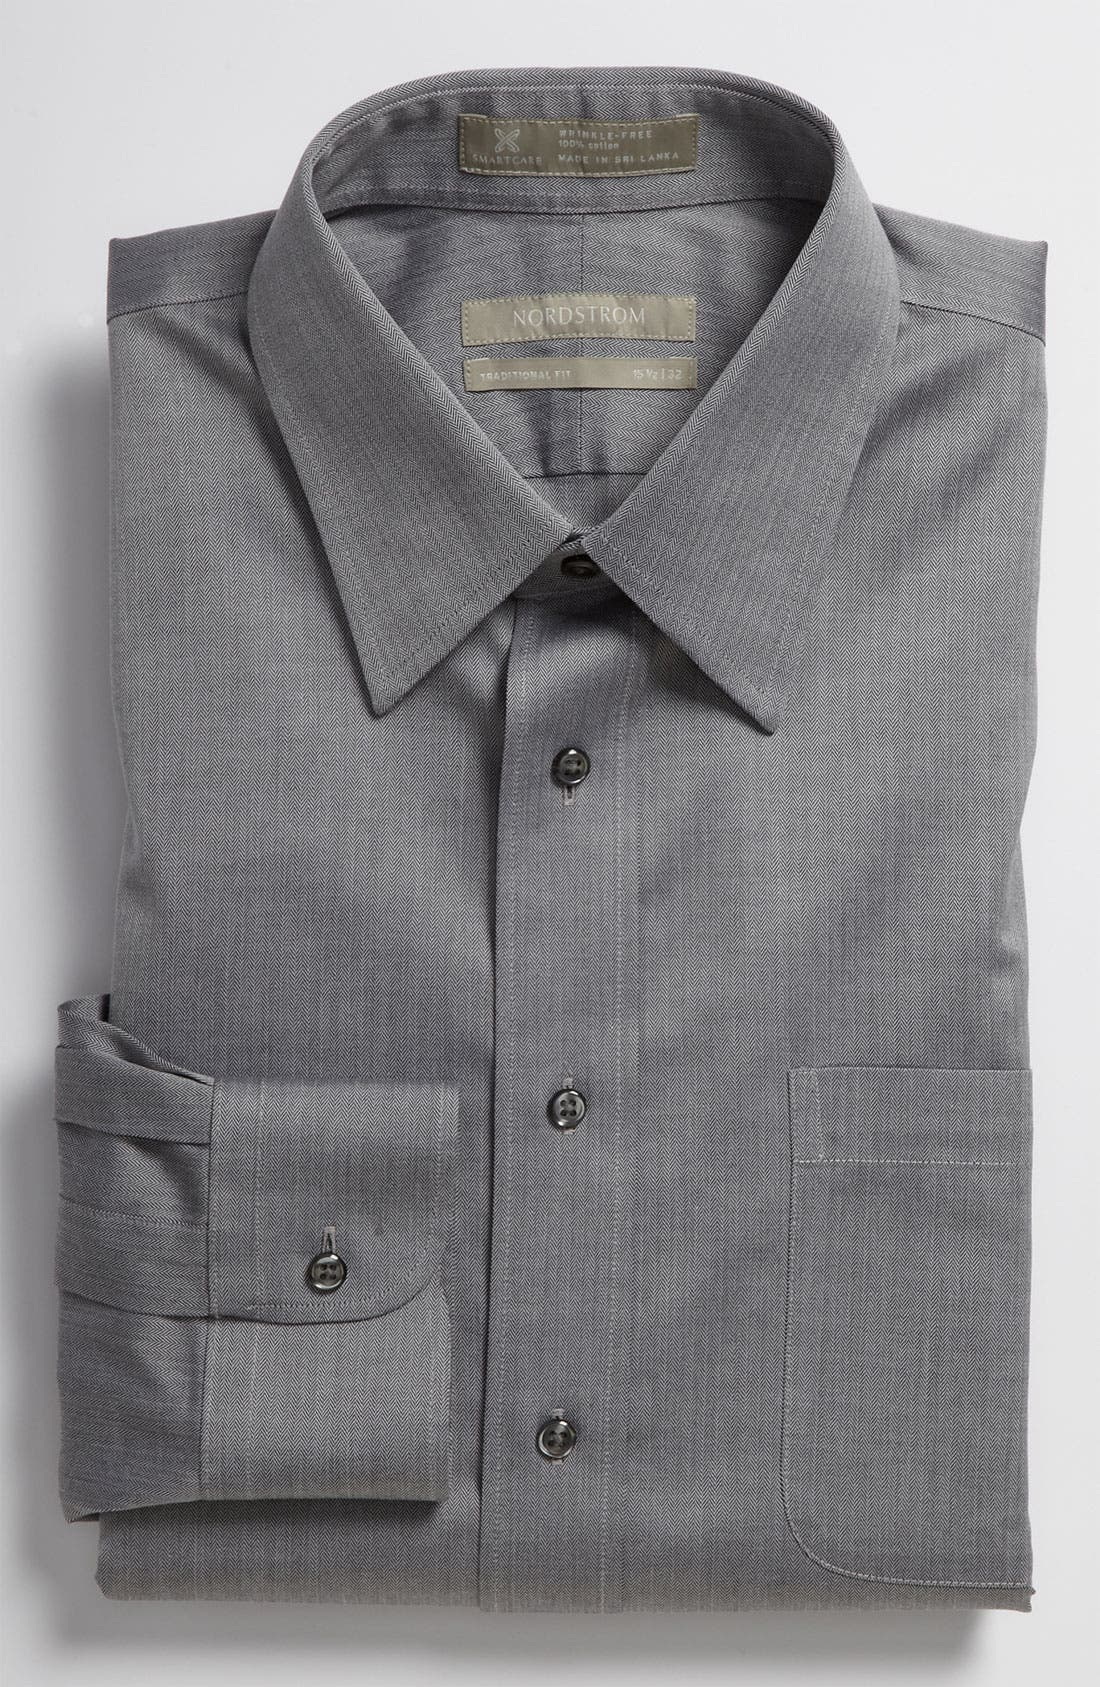 Main Image - Nordstrom Men's Shop Smartcare™ Wrinkle Free Traditional Fit Herringbone Dress Shirt